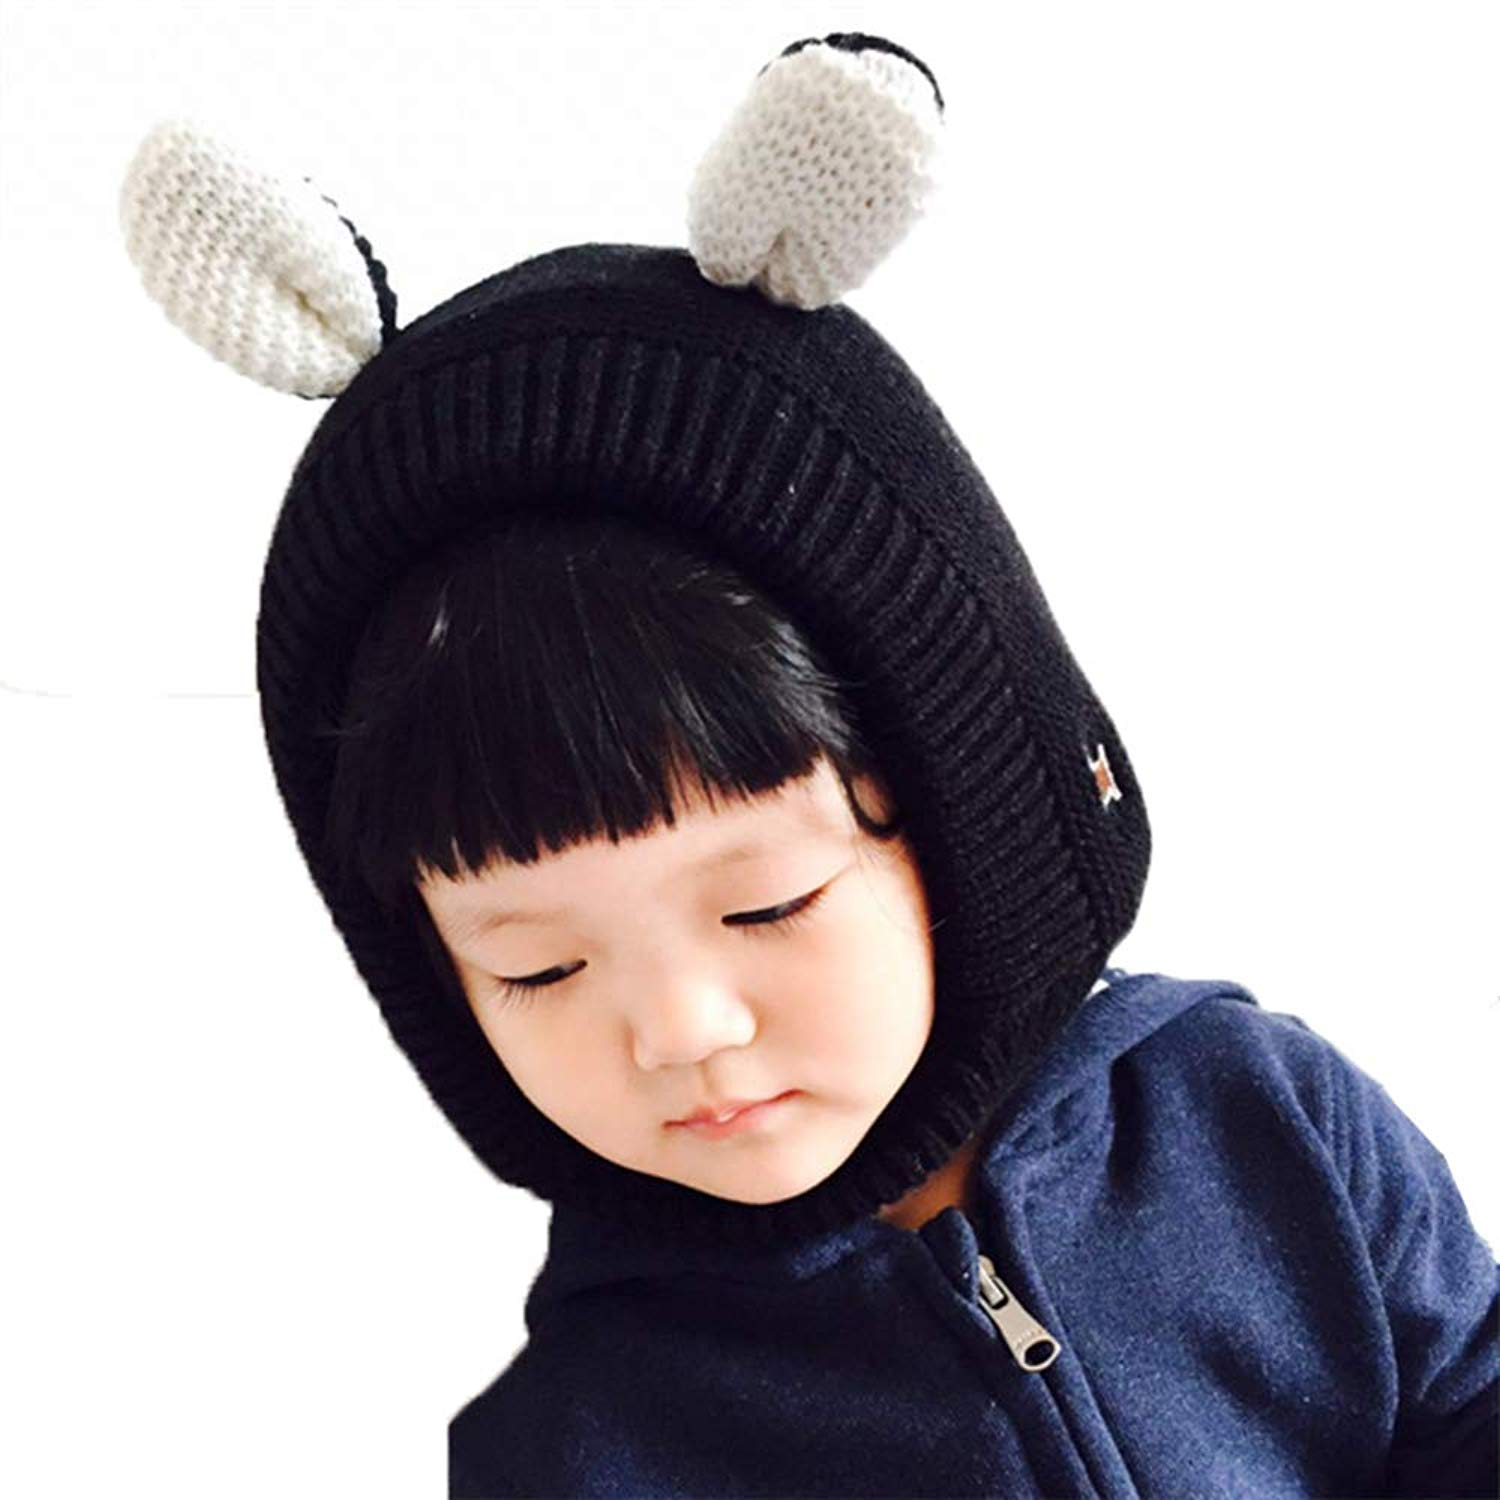 2ff599c3a0a Get Quotations · Yehopere Kids Baby Toddler Cable Knit Hat Children¡¯s  Winter Hat Ears Beanie Caps